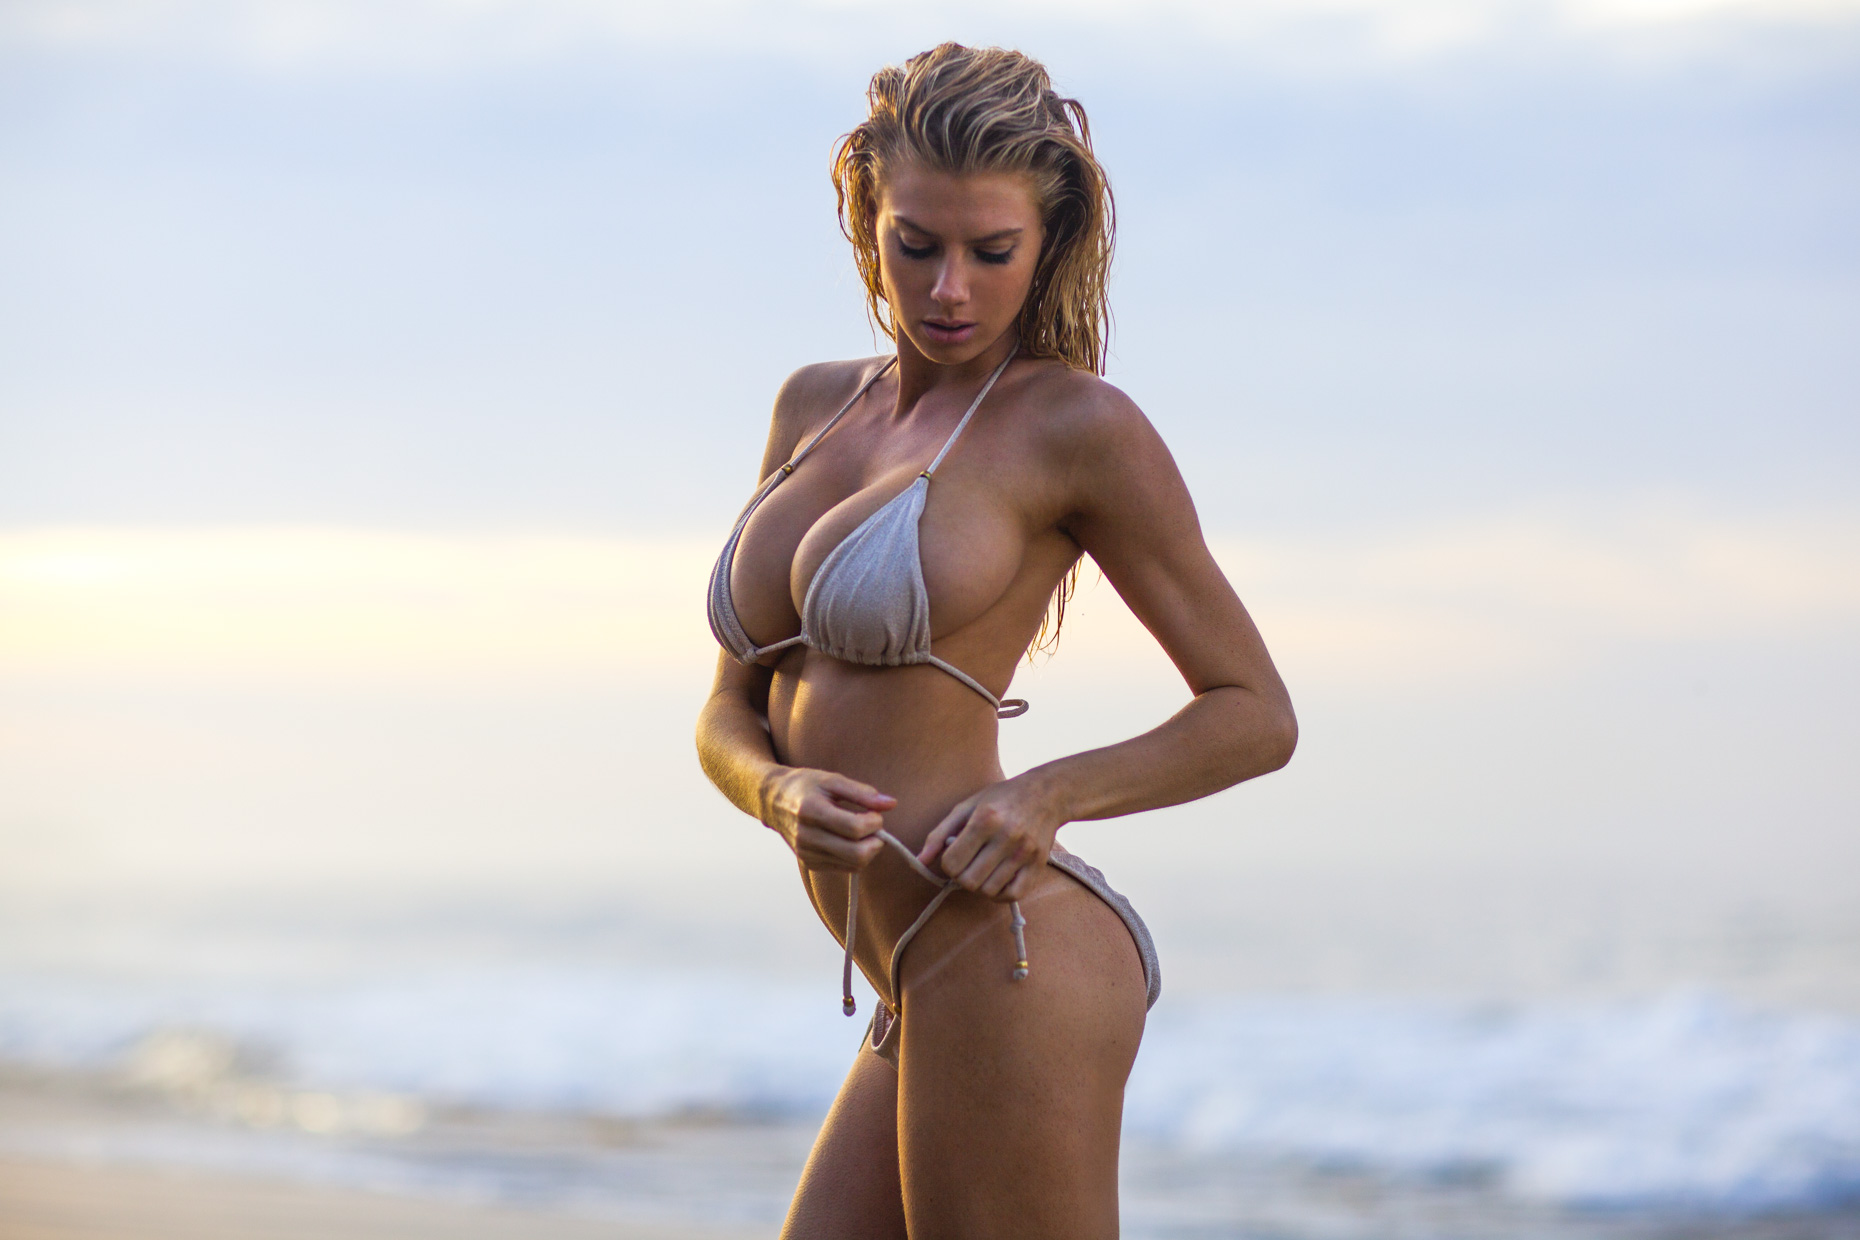 charlotte-mckinney-bikini-pics-are-so-hot-2